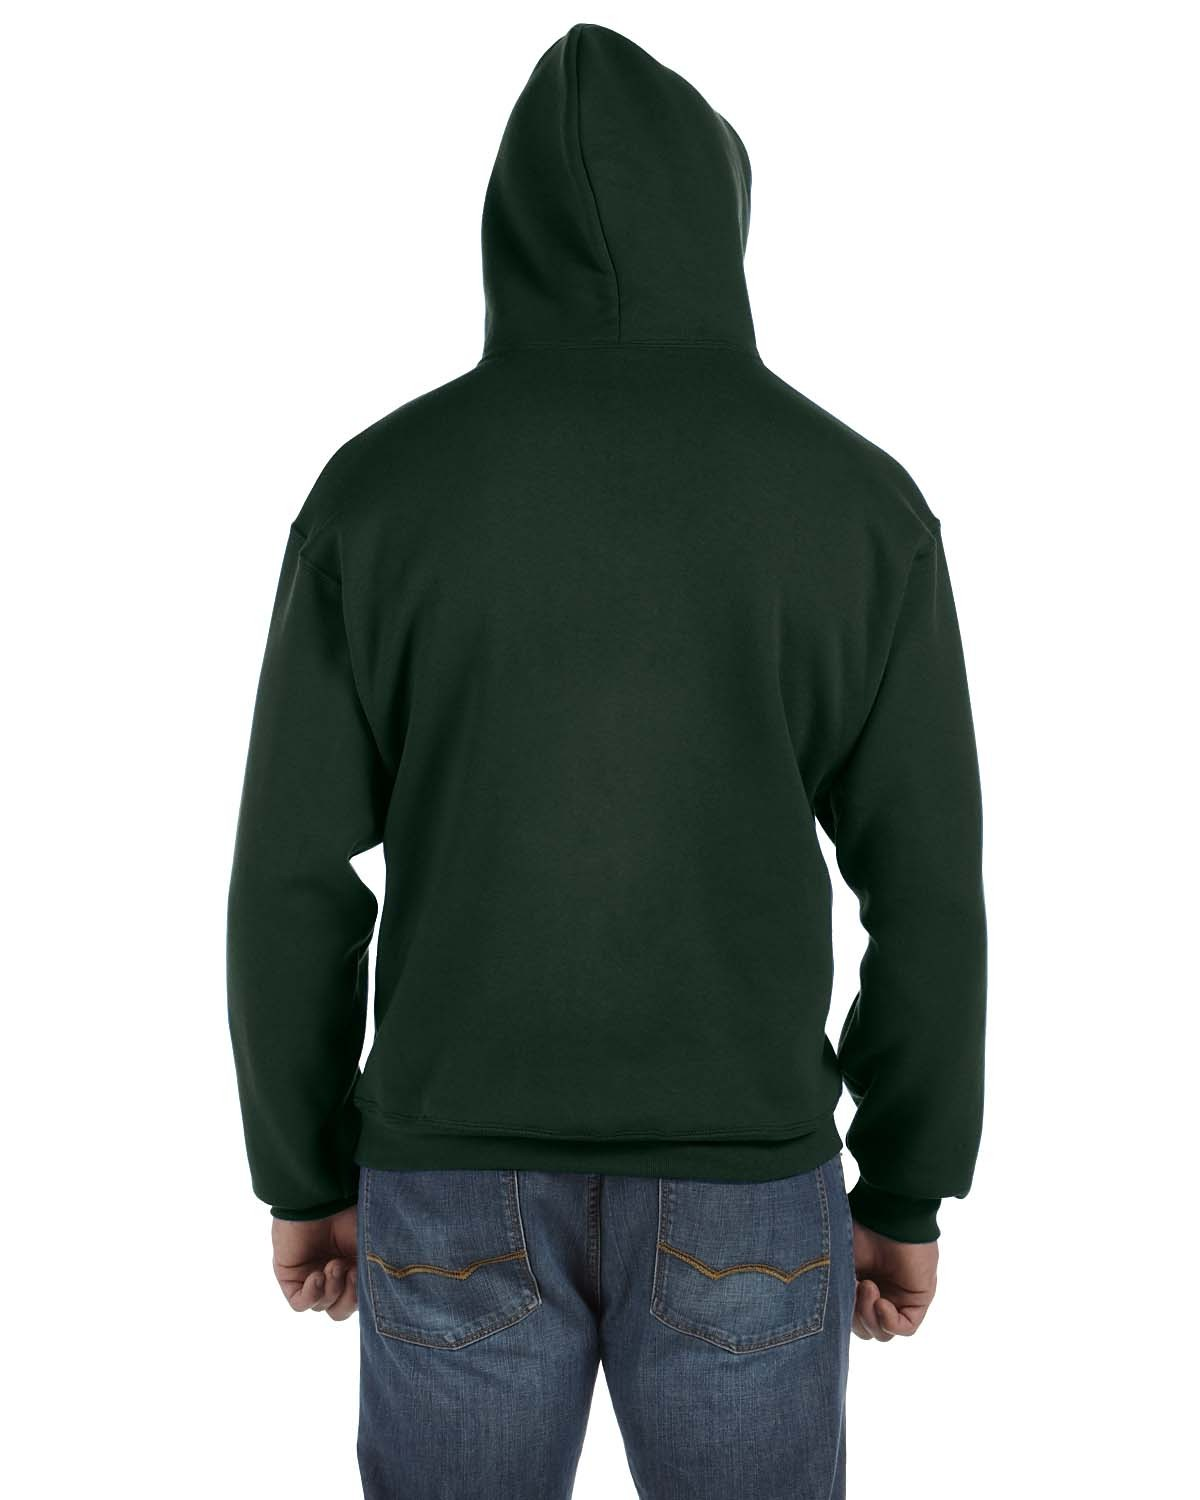 82130 Fruit of the Loom FOREST GREEN